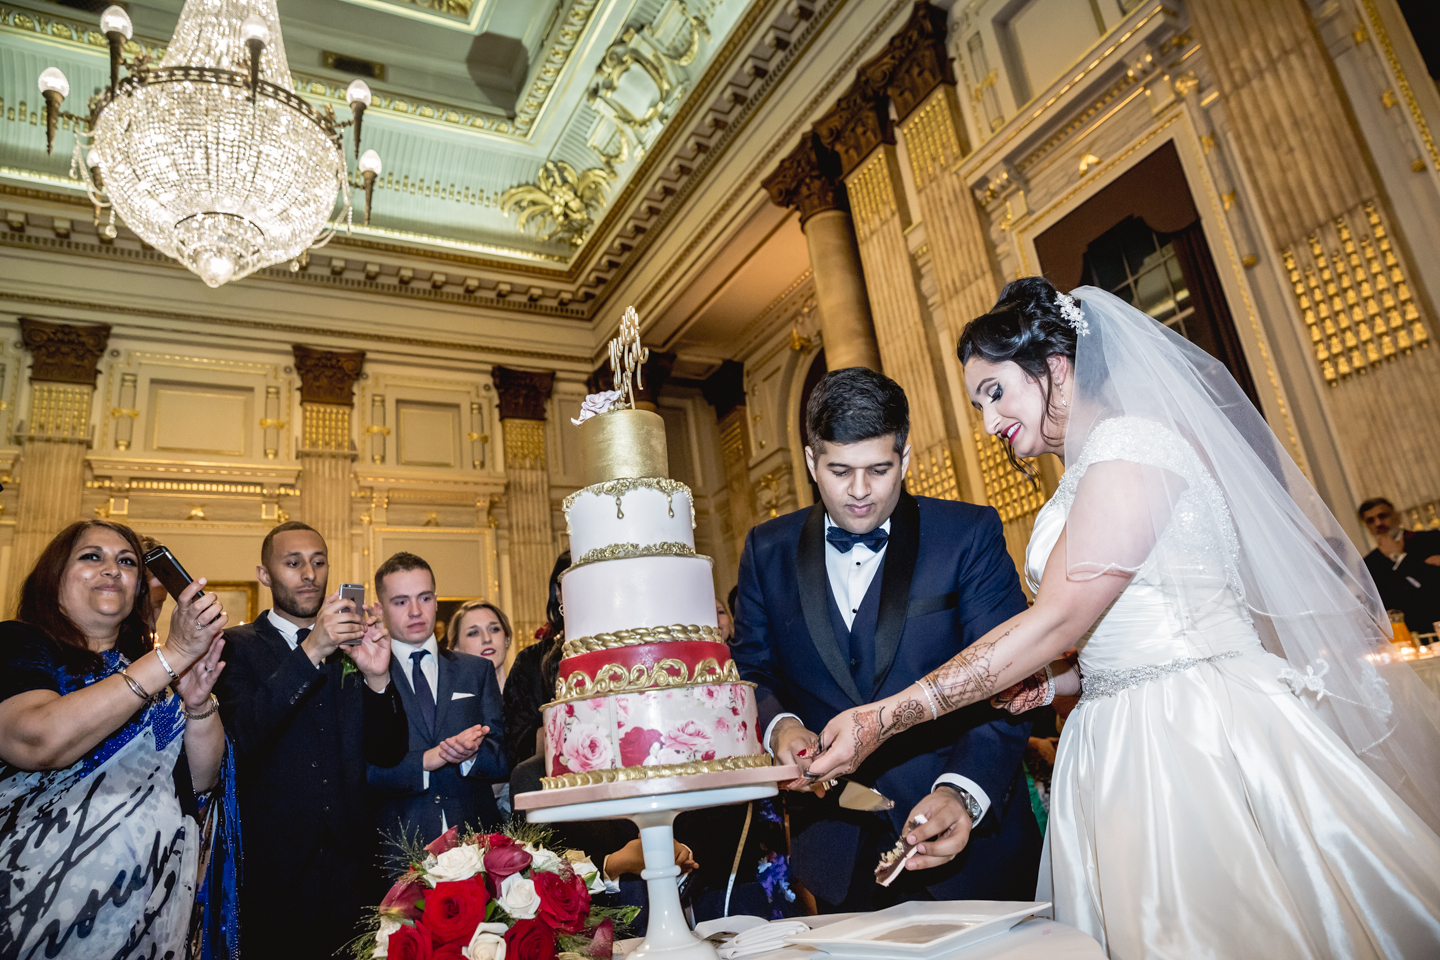 London Wedding Photographer Muslim Wedding Samir&Yusra London Wedding125.jpg